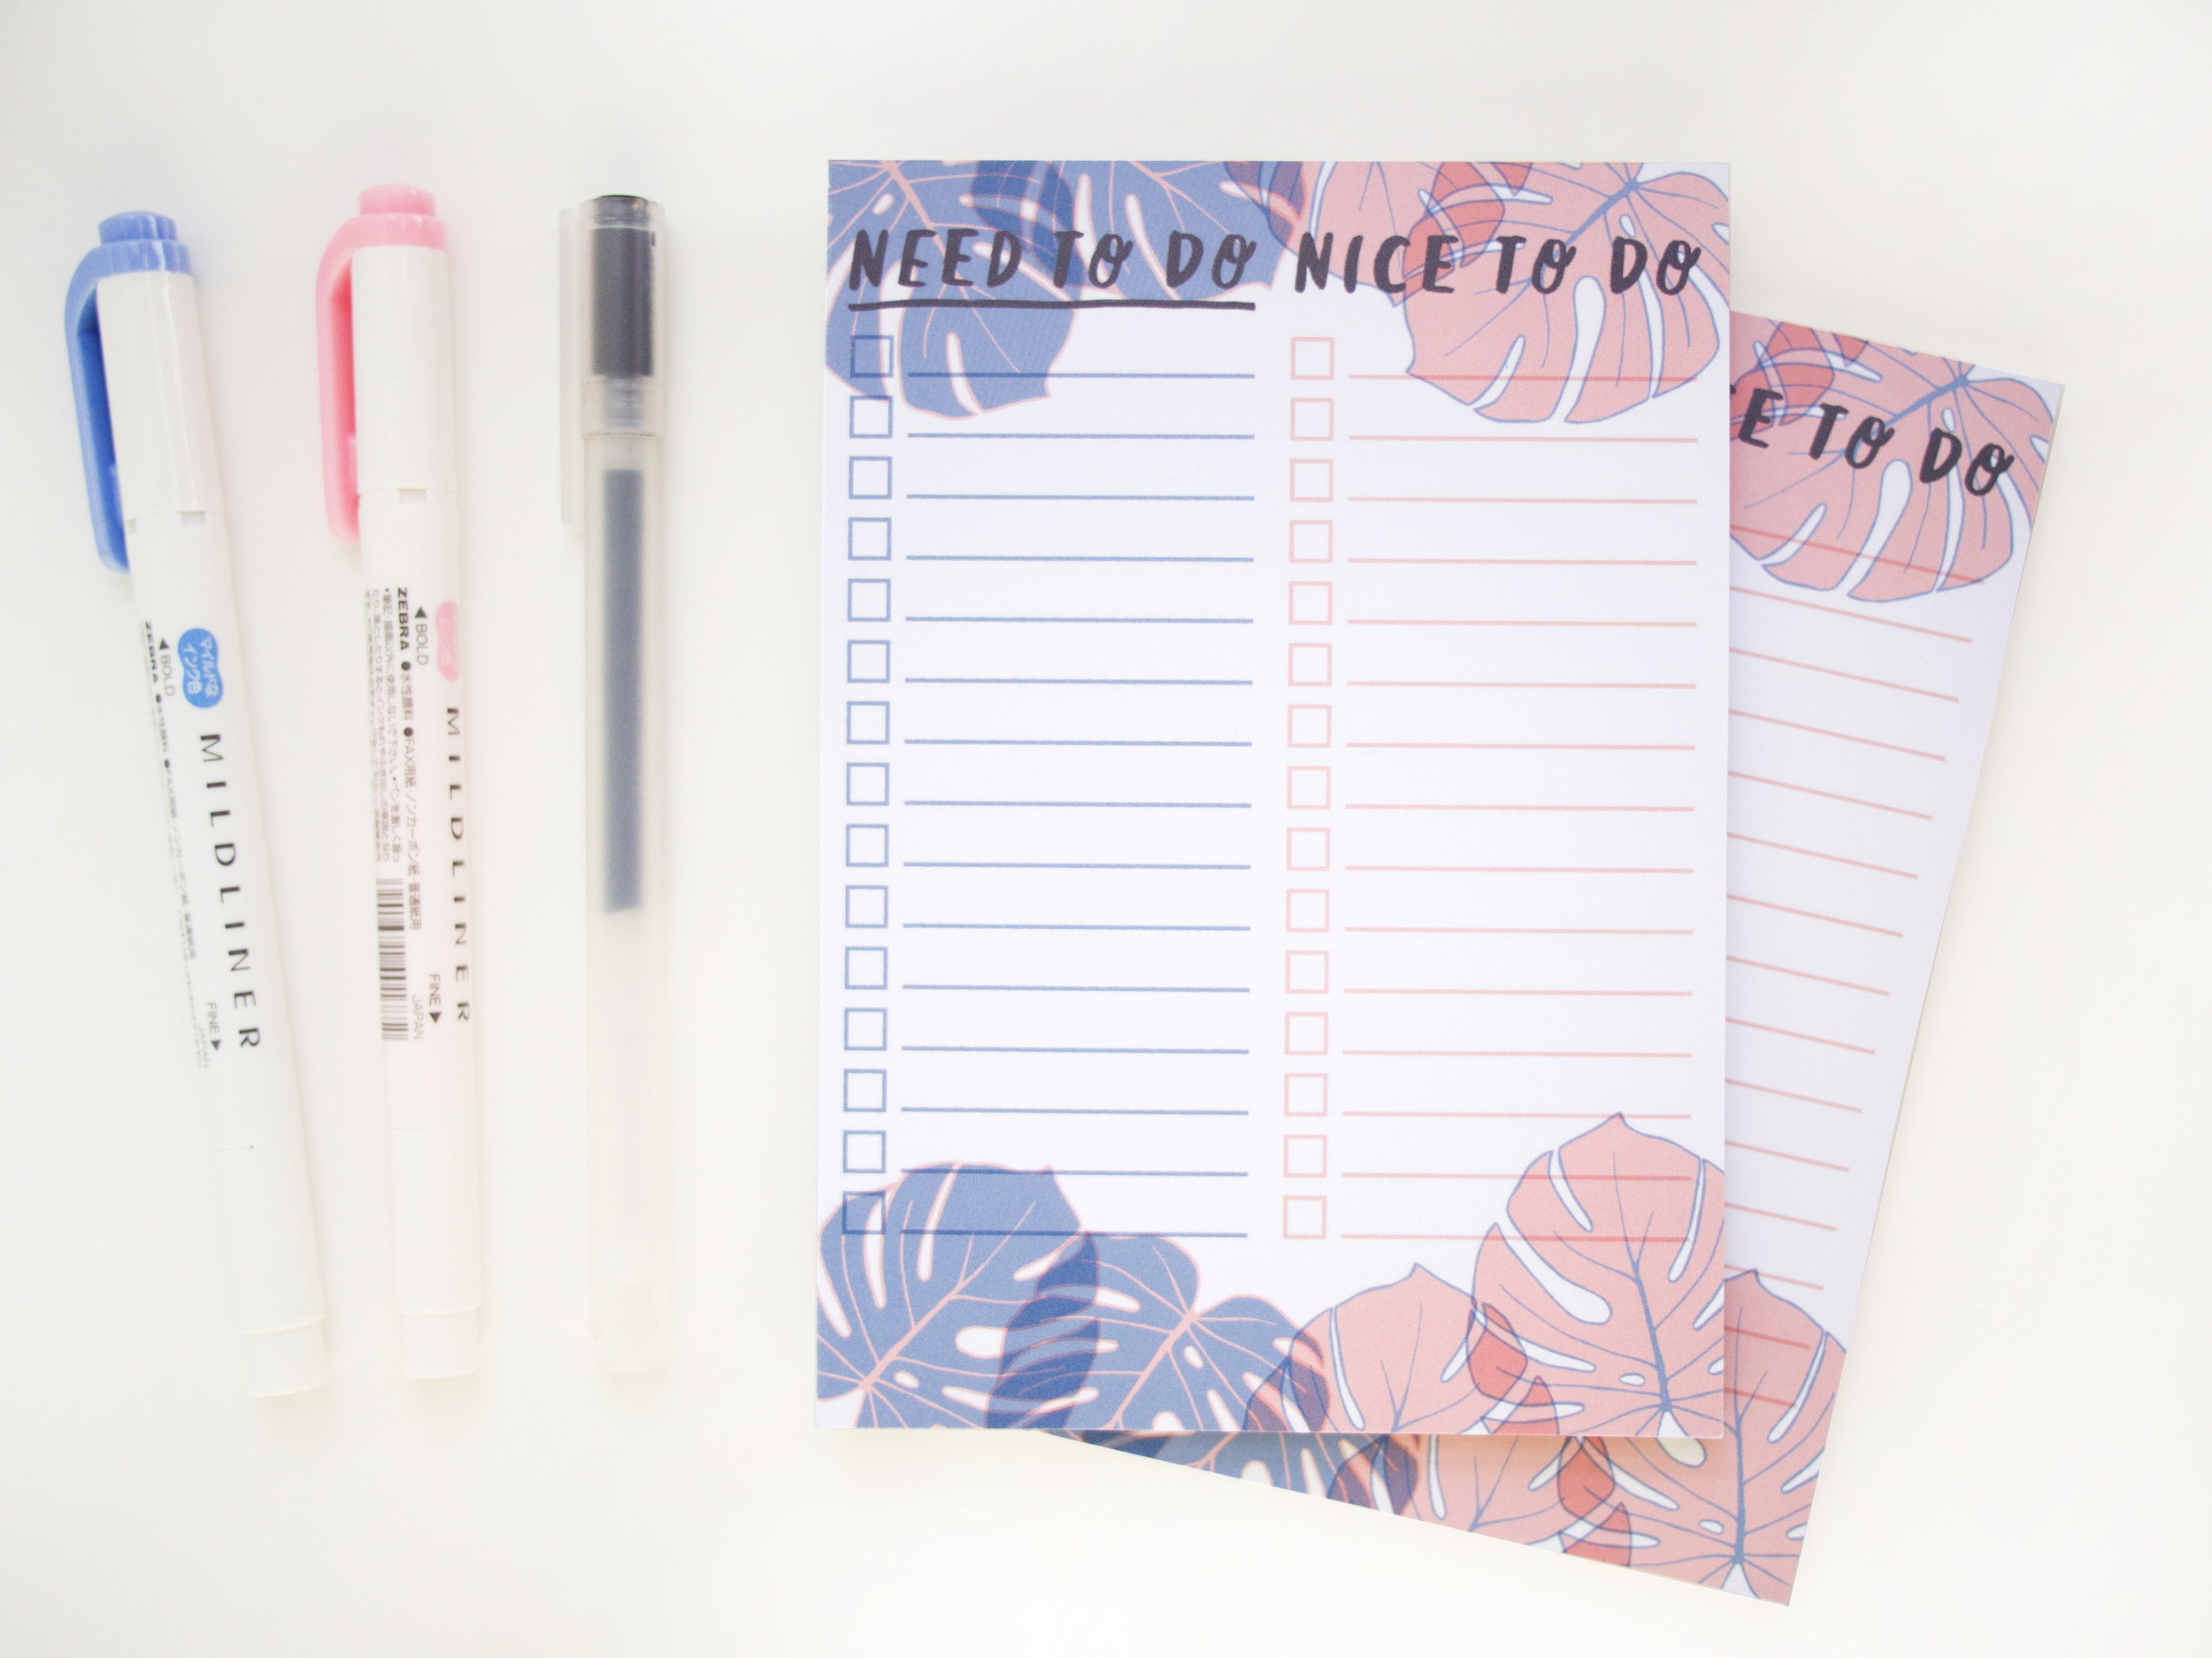 Monstera Leaf Notepad To Do List // store.ohnorachio.com